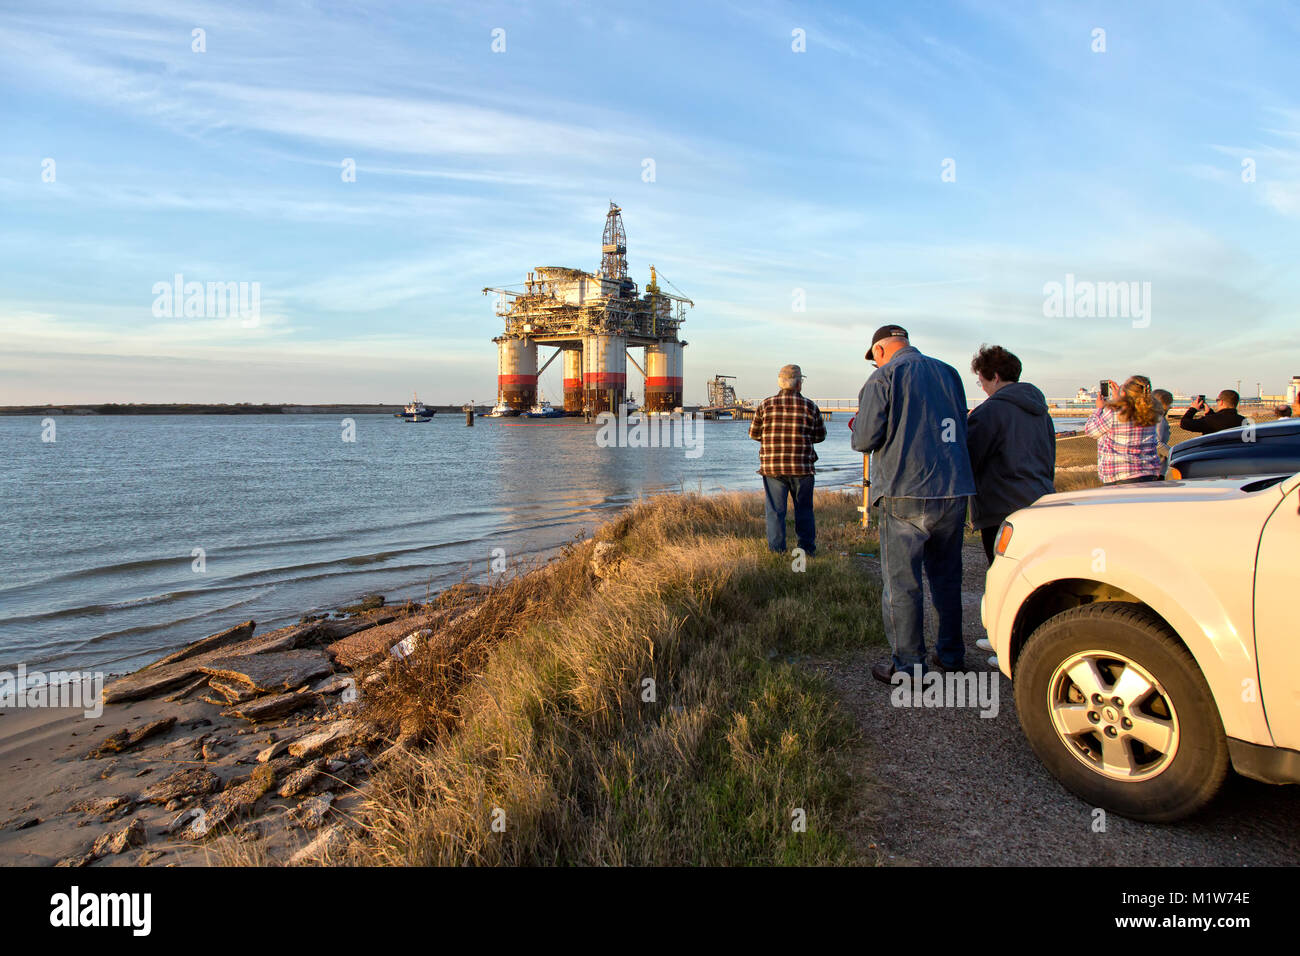 'Big Foot' Chevron's Offshore Ocean platform, oil & natural gas drill rig, departed Ingleside. - Stock Image